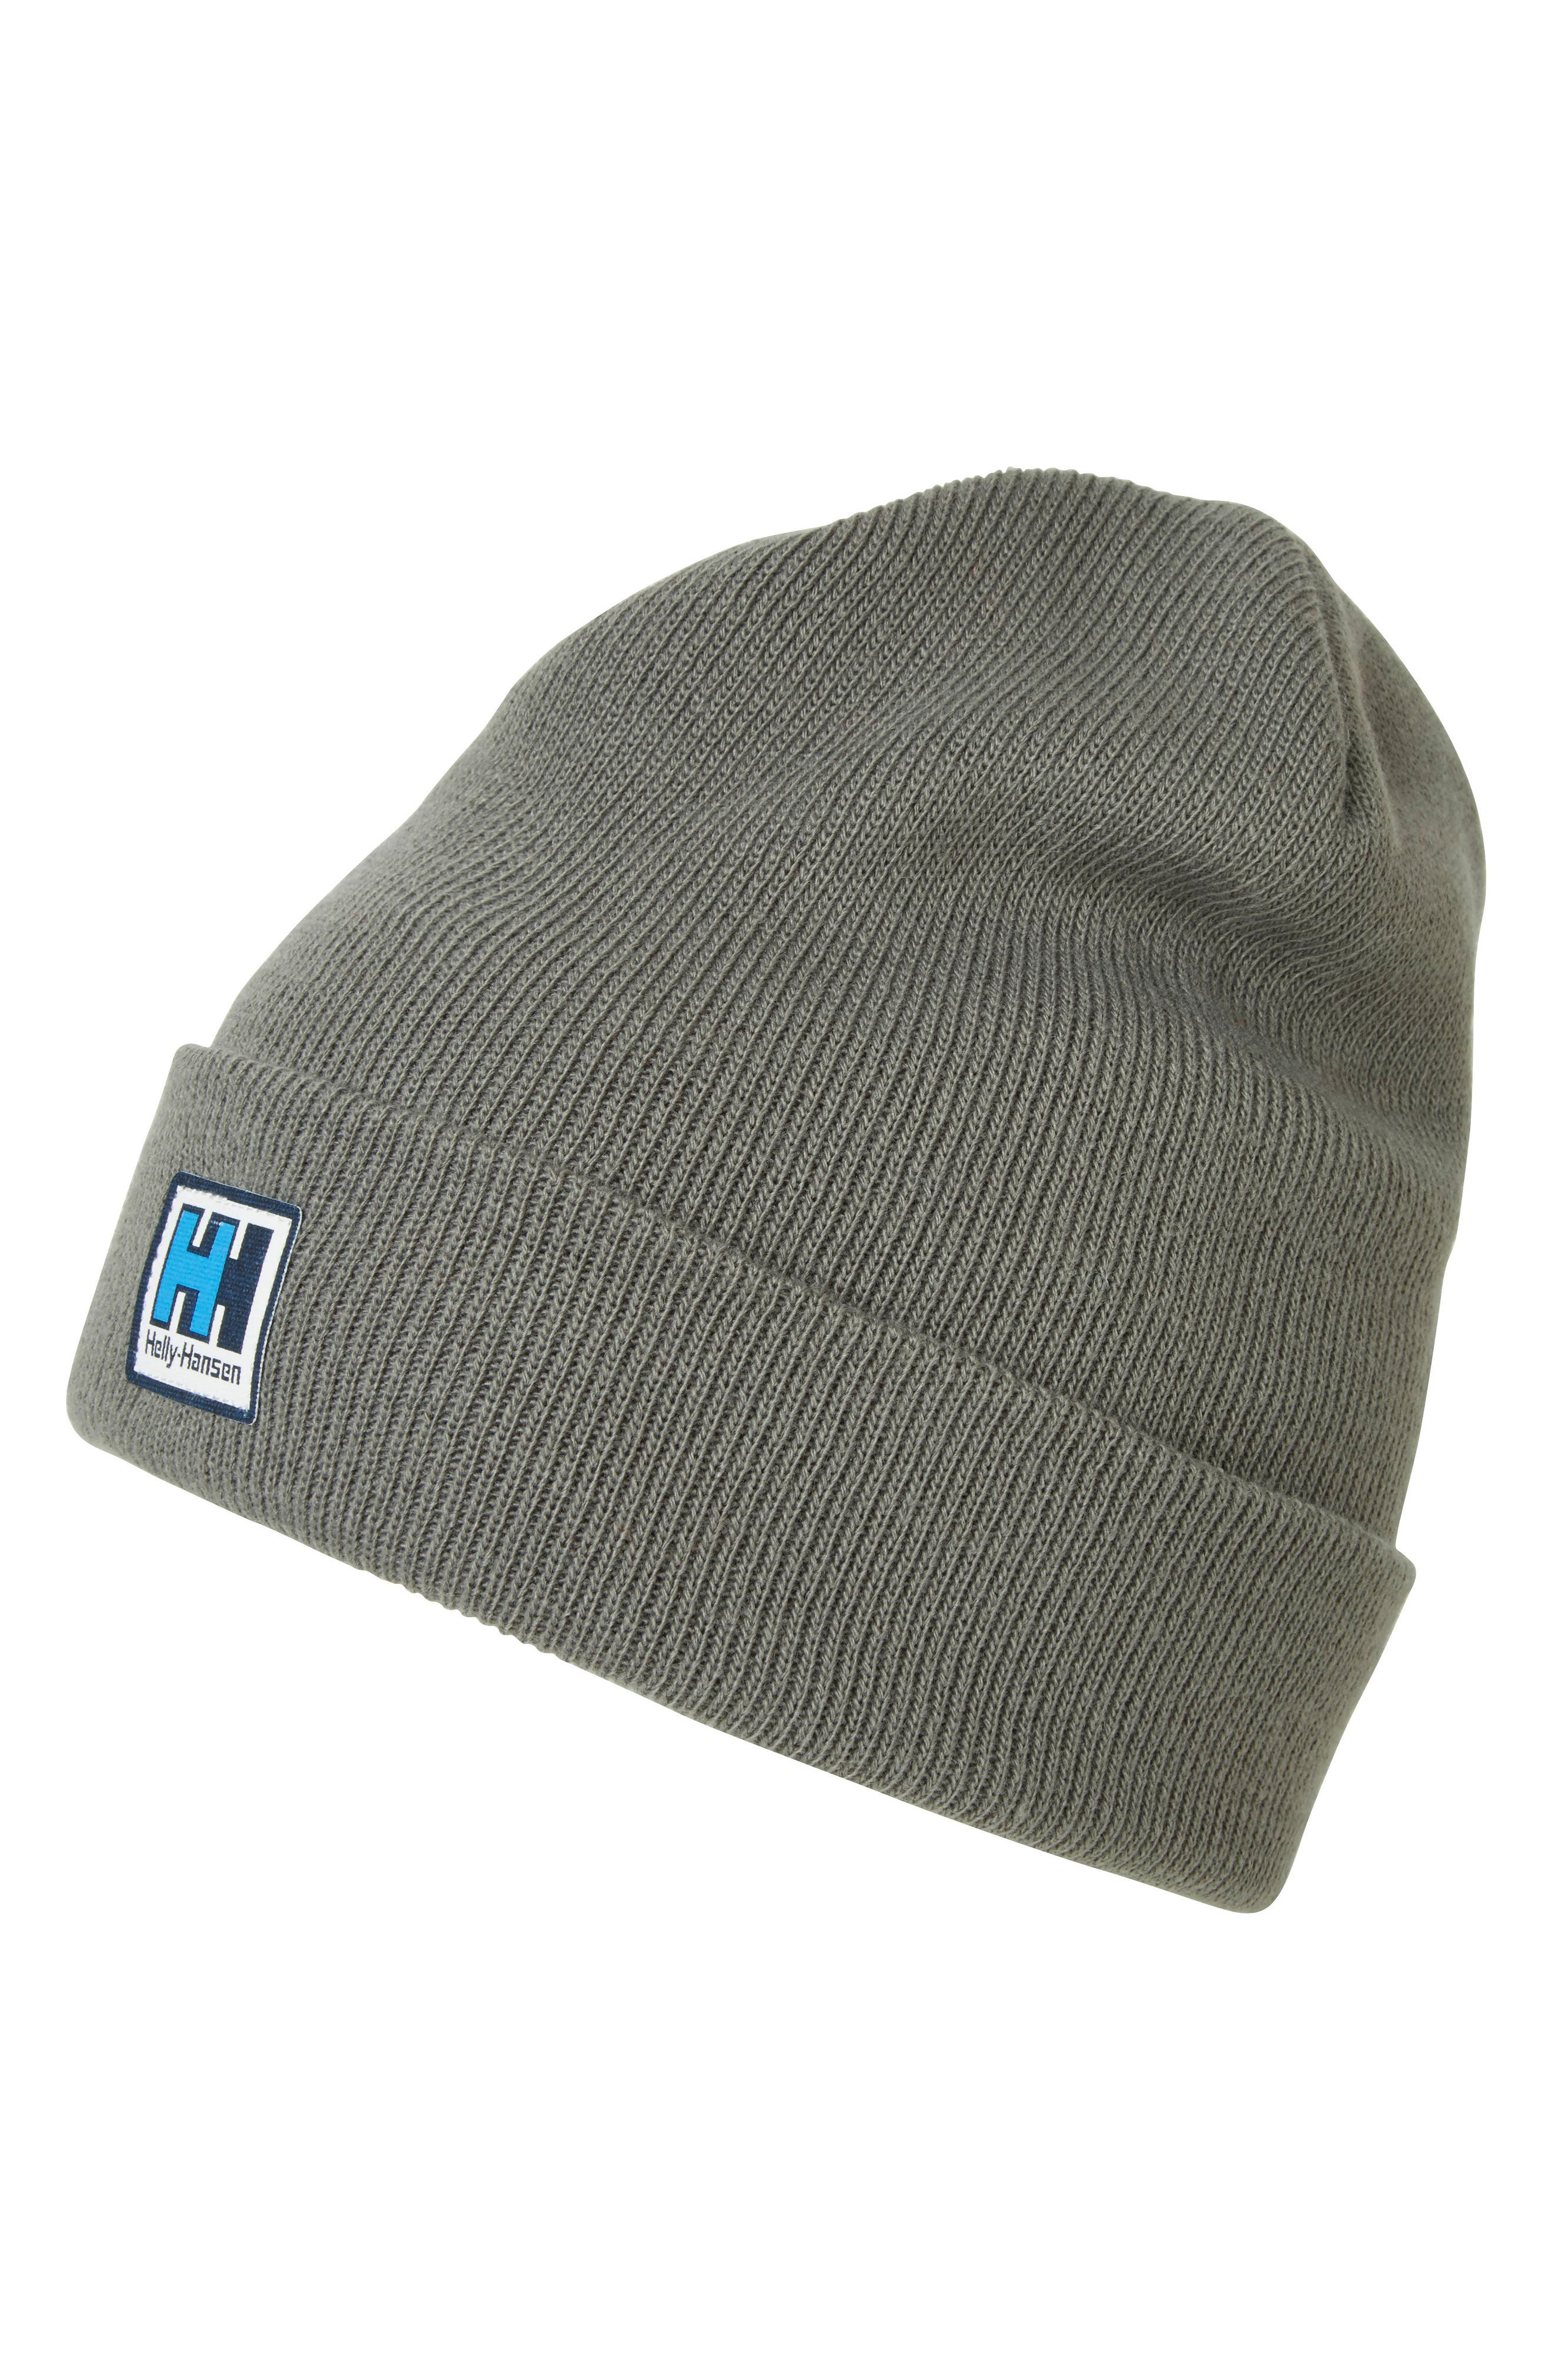 Alternate Image 1 Selected - Helly Hansen Urban Beanie